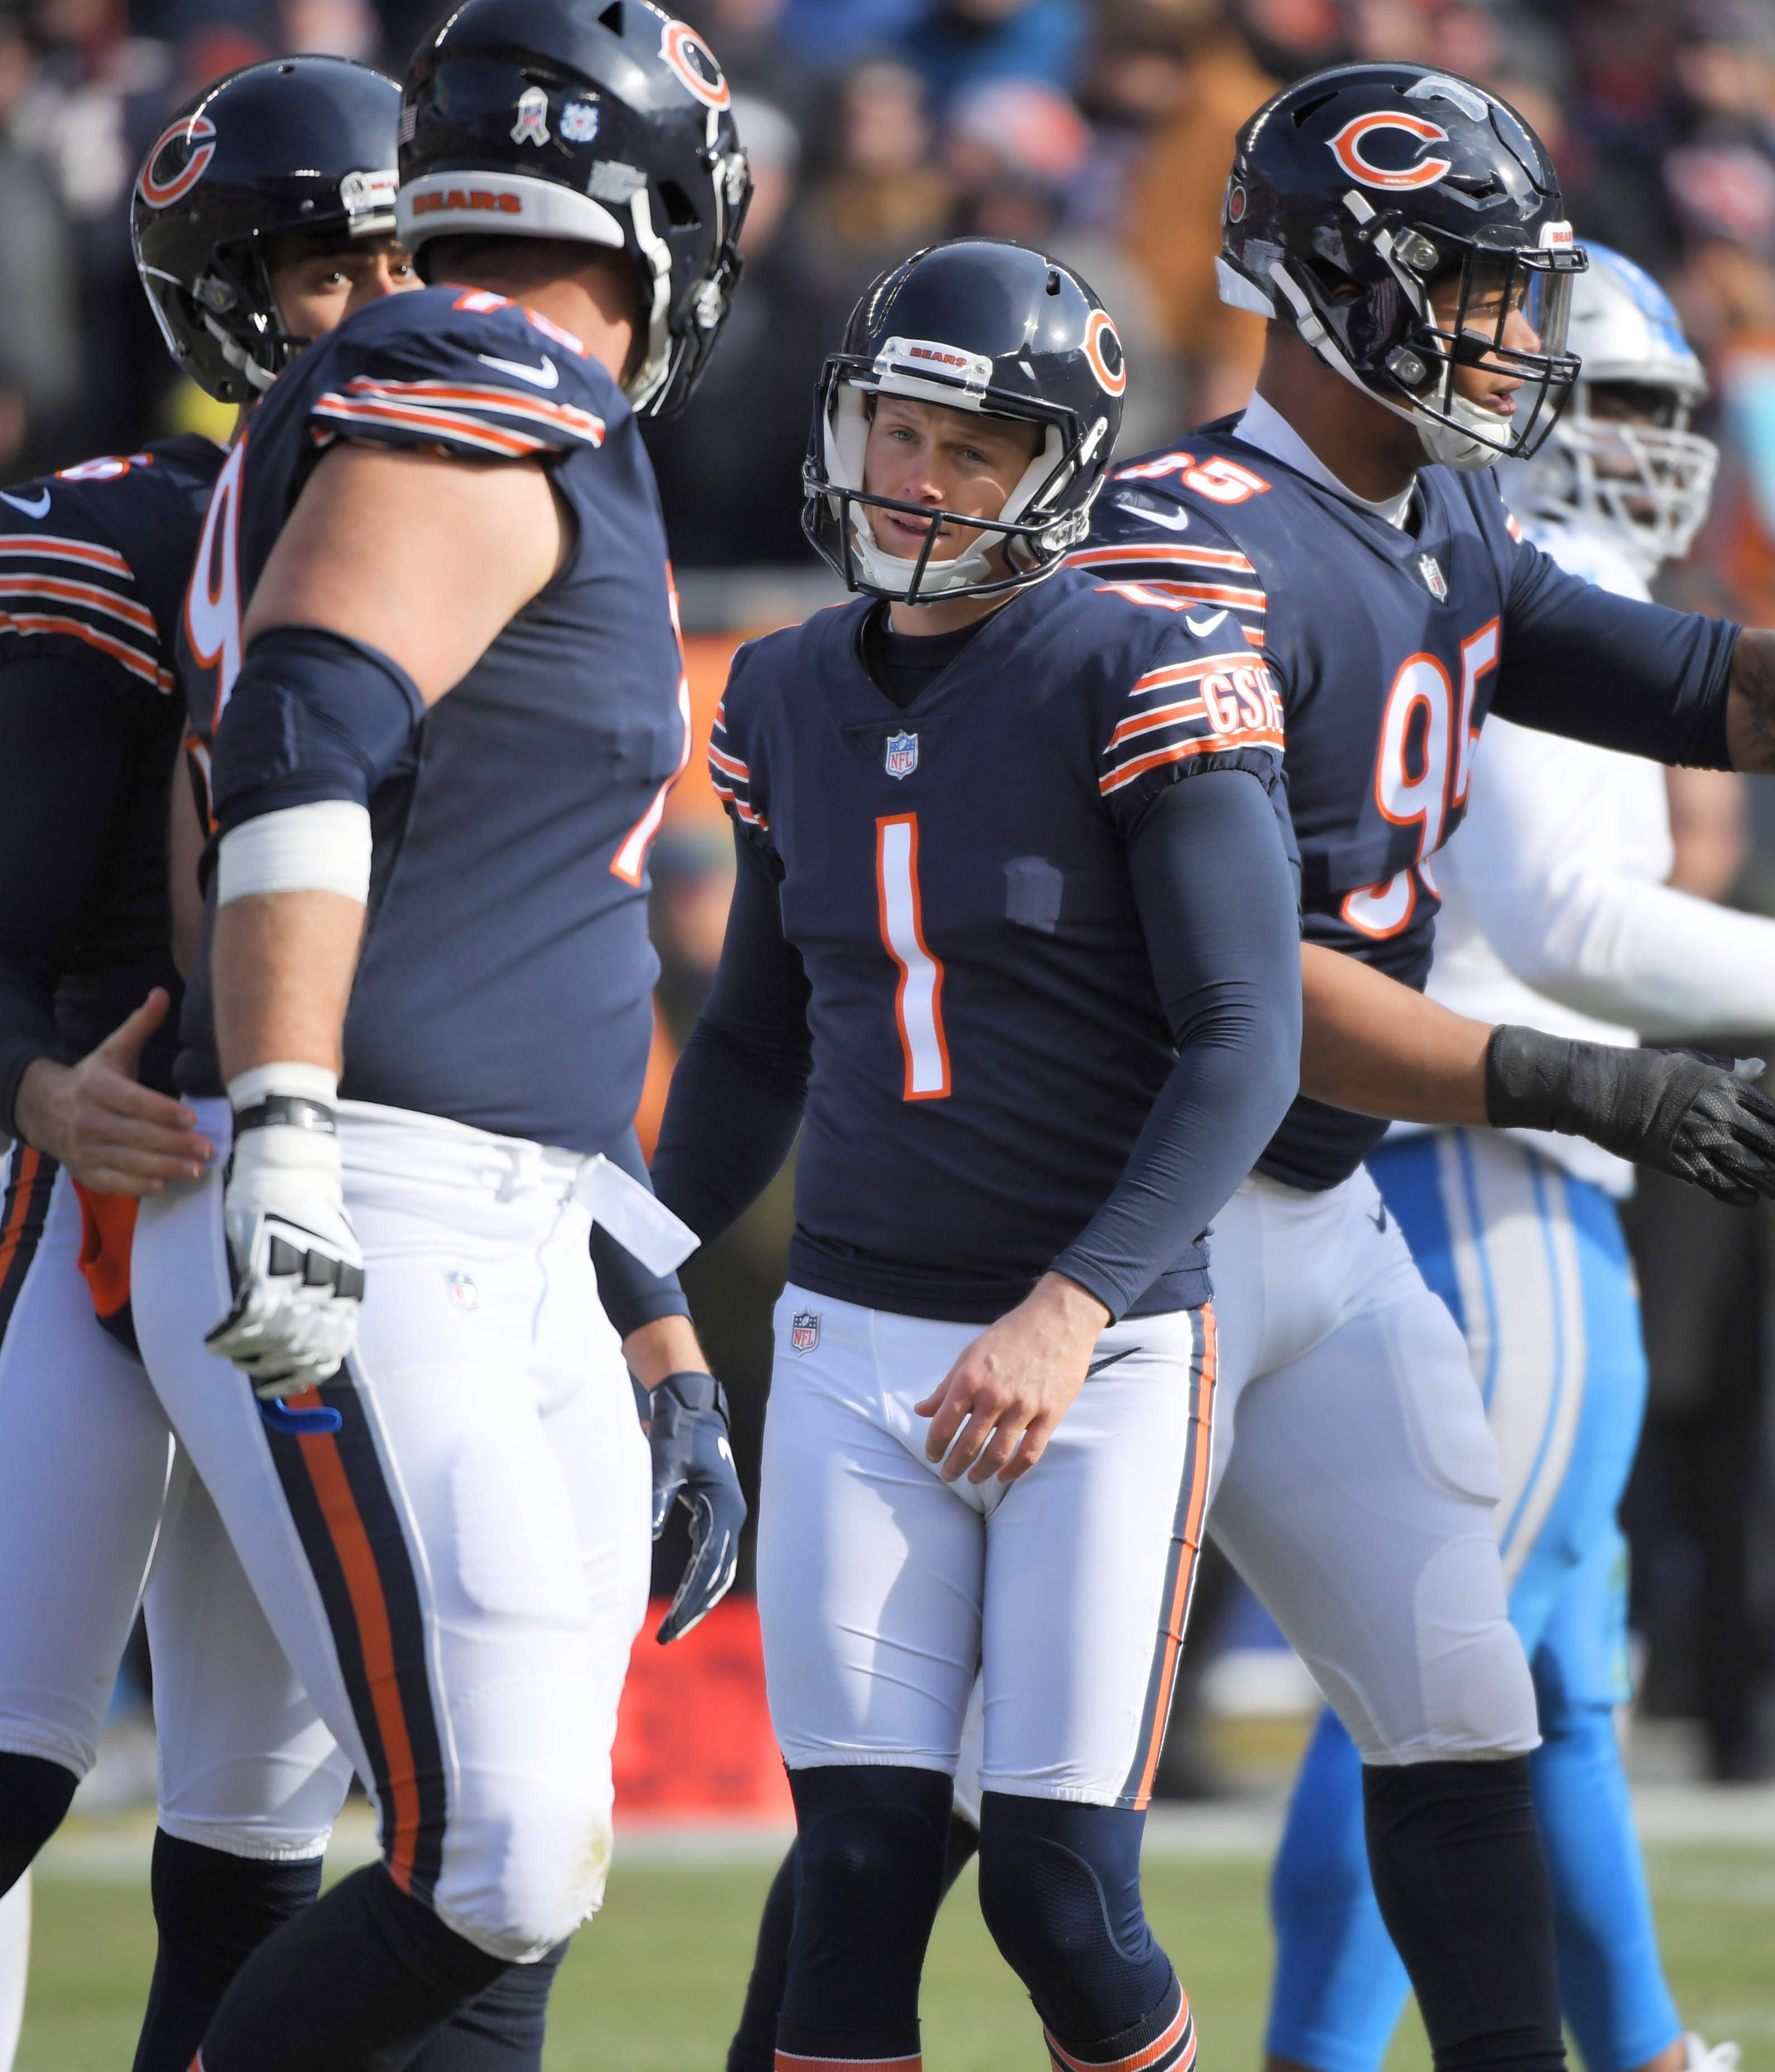 Chicago Bears kicker Cody Parkey reacts after missing his second extra point attempt against the Detroit Lions Sunday at Soldier Field in Chicago.